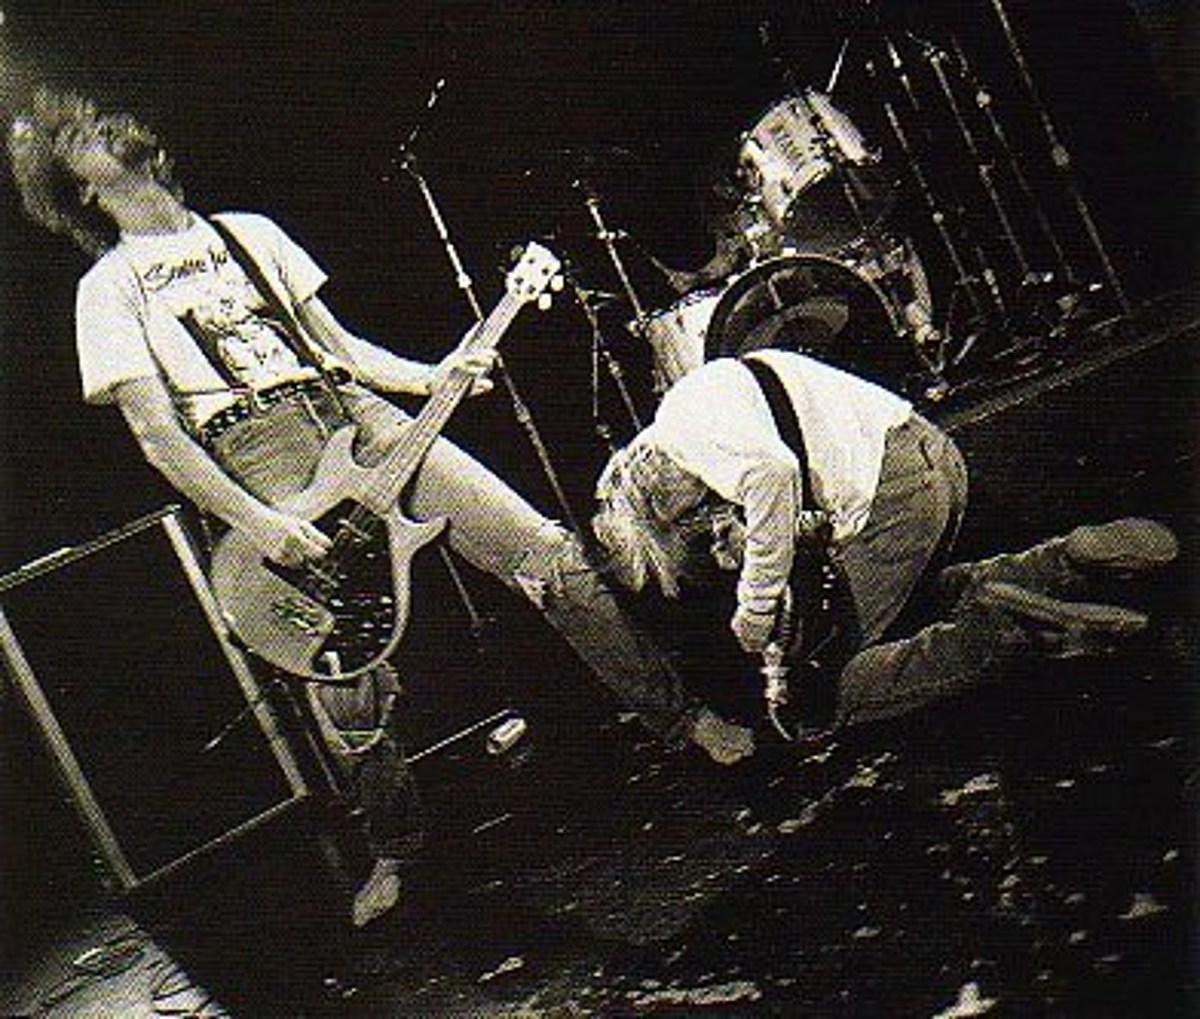 15 classic grunge & alternative rock concert videos to watch right now